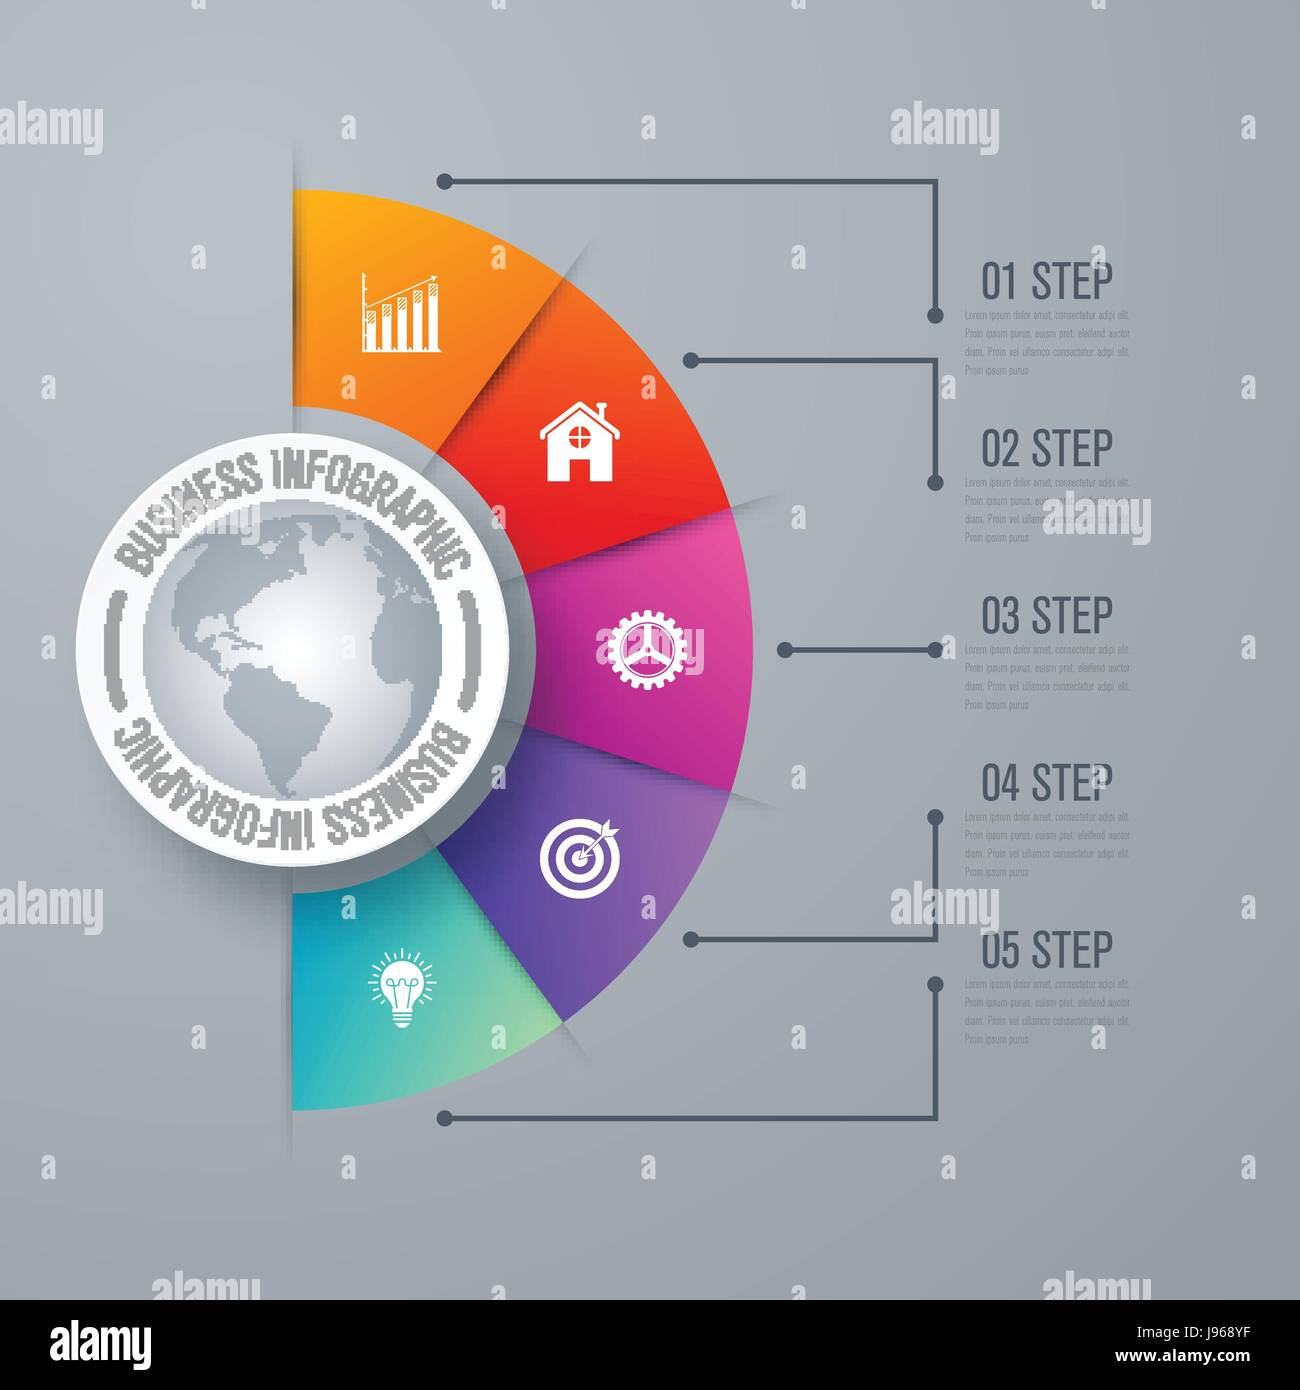 Design infographic template 5 steps - Stock Image